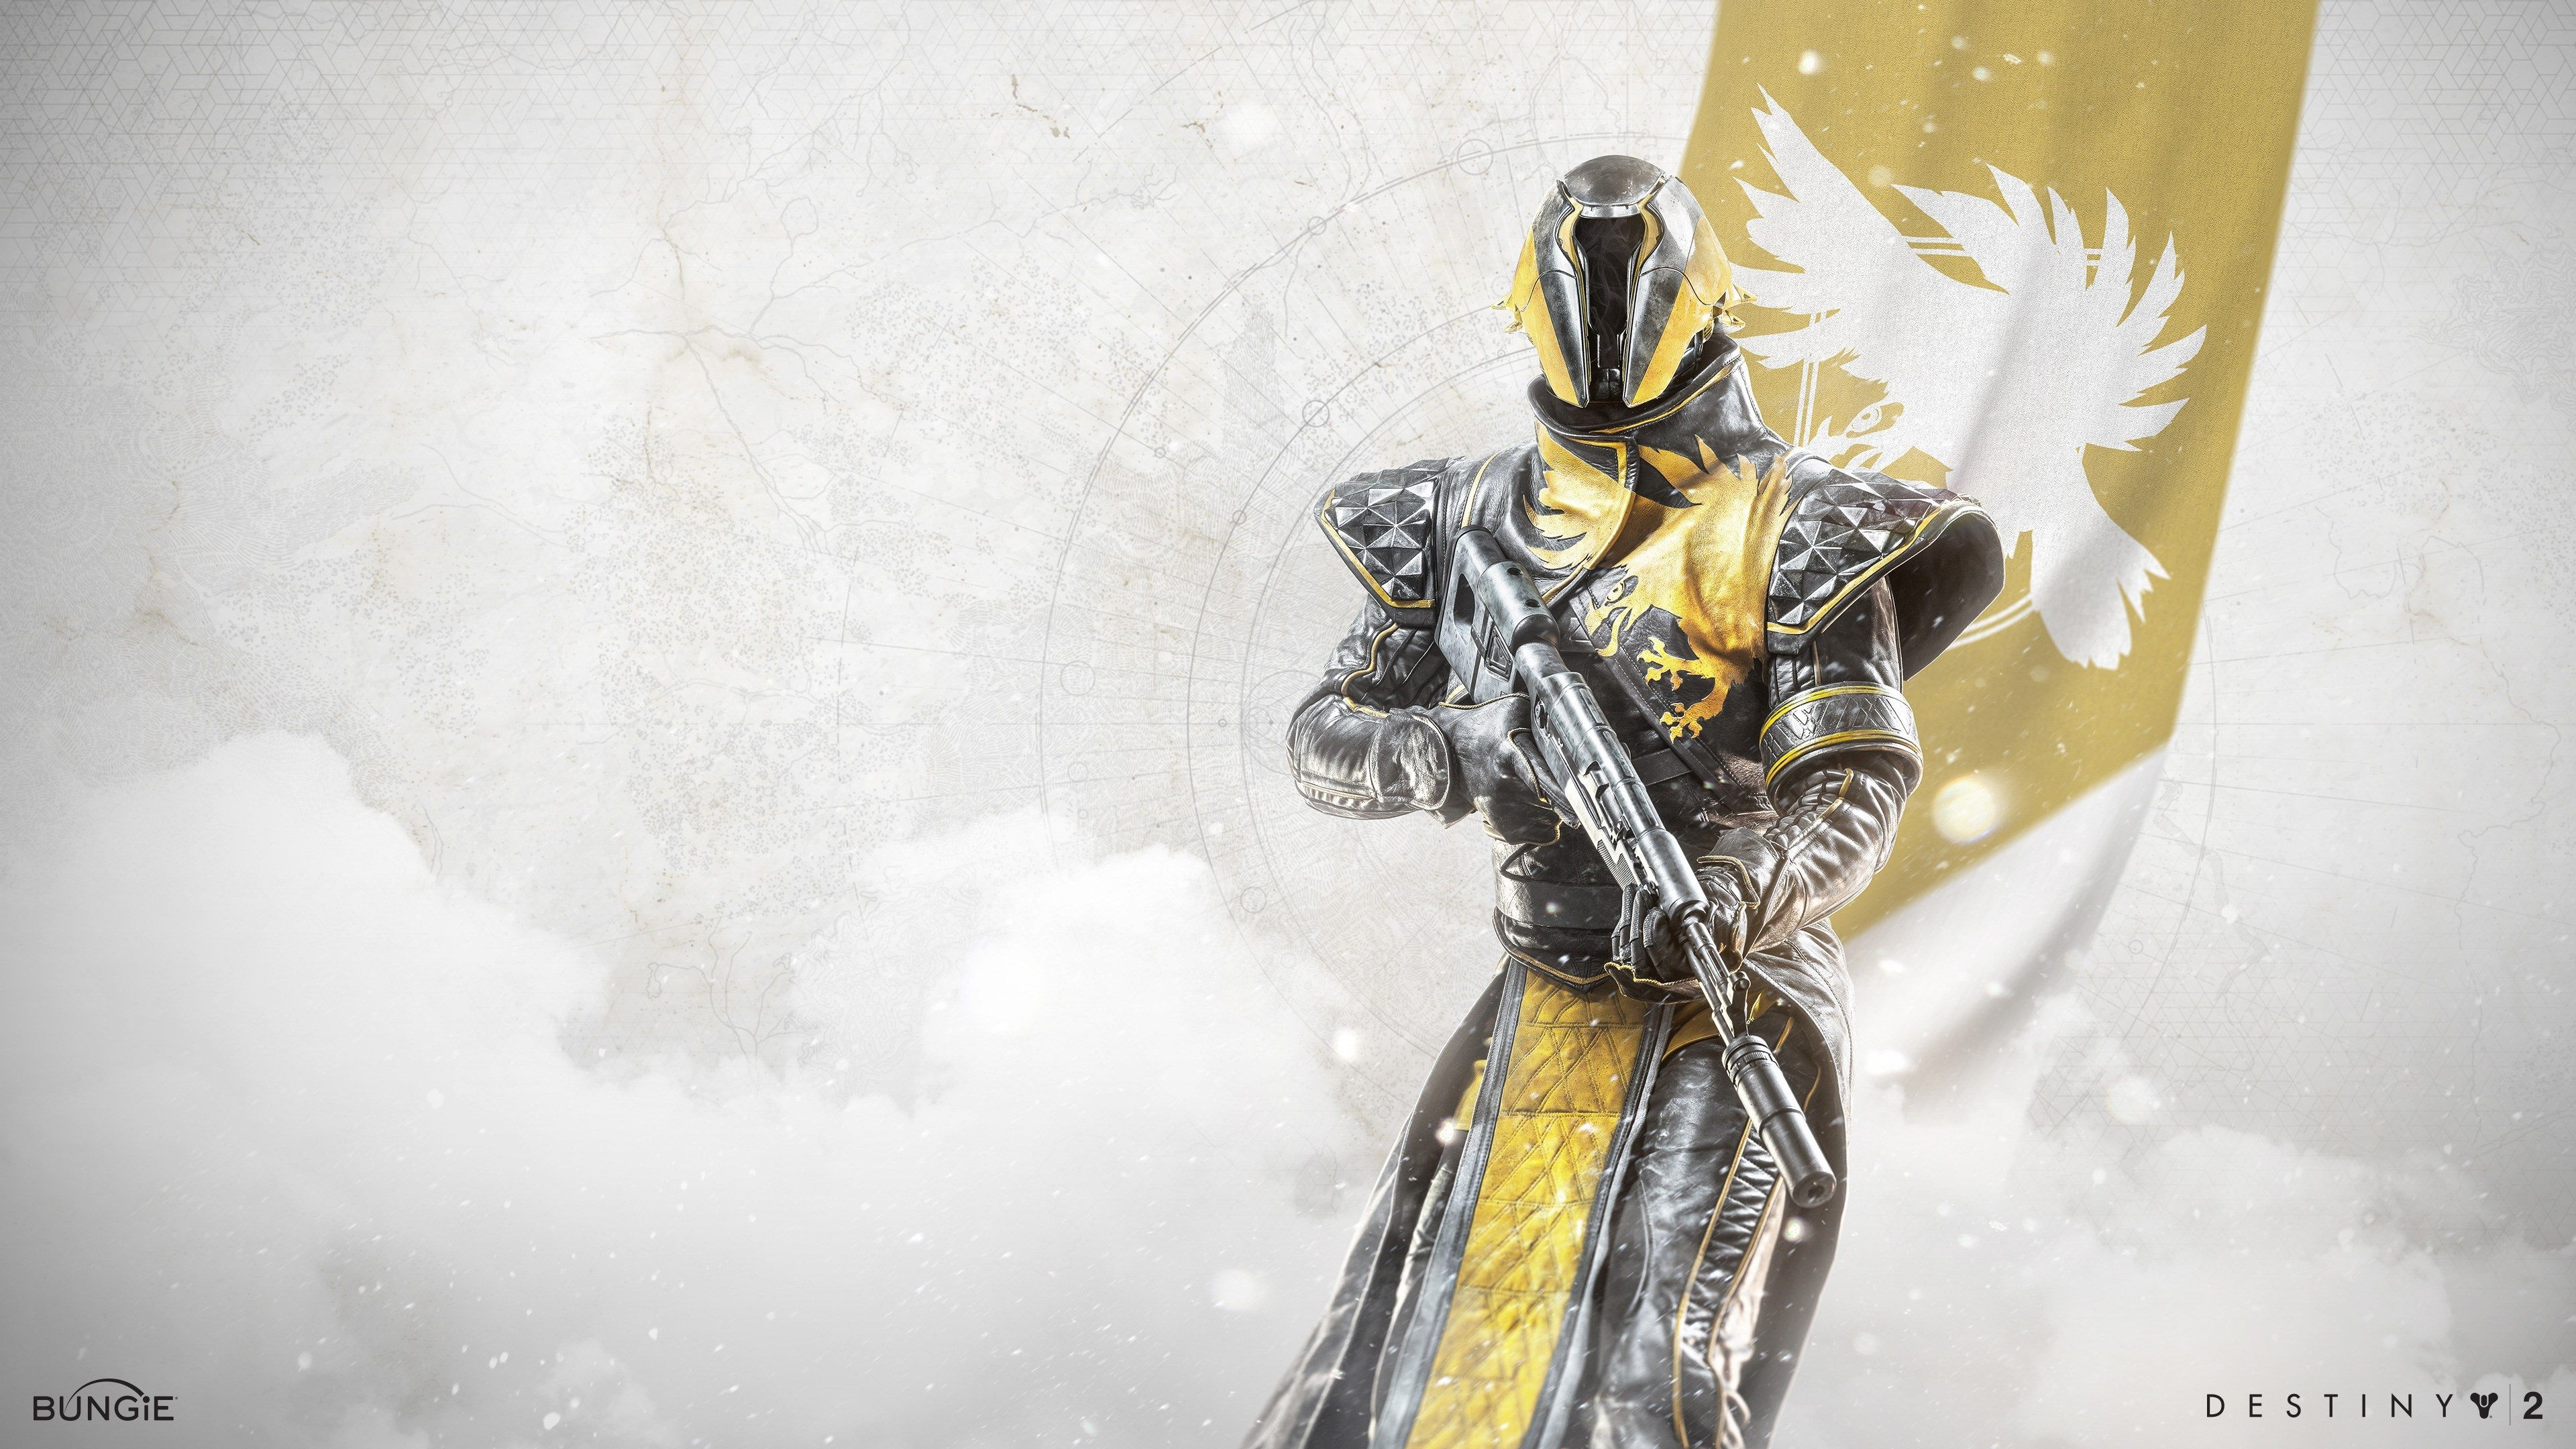 3840x2160 Warlock 4k Desktop Wallpaper High Resolution Free Download Destiny Backgrounds Destiny Wallpaper Backgrounds